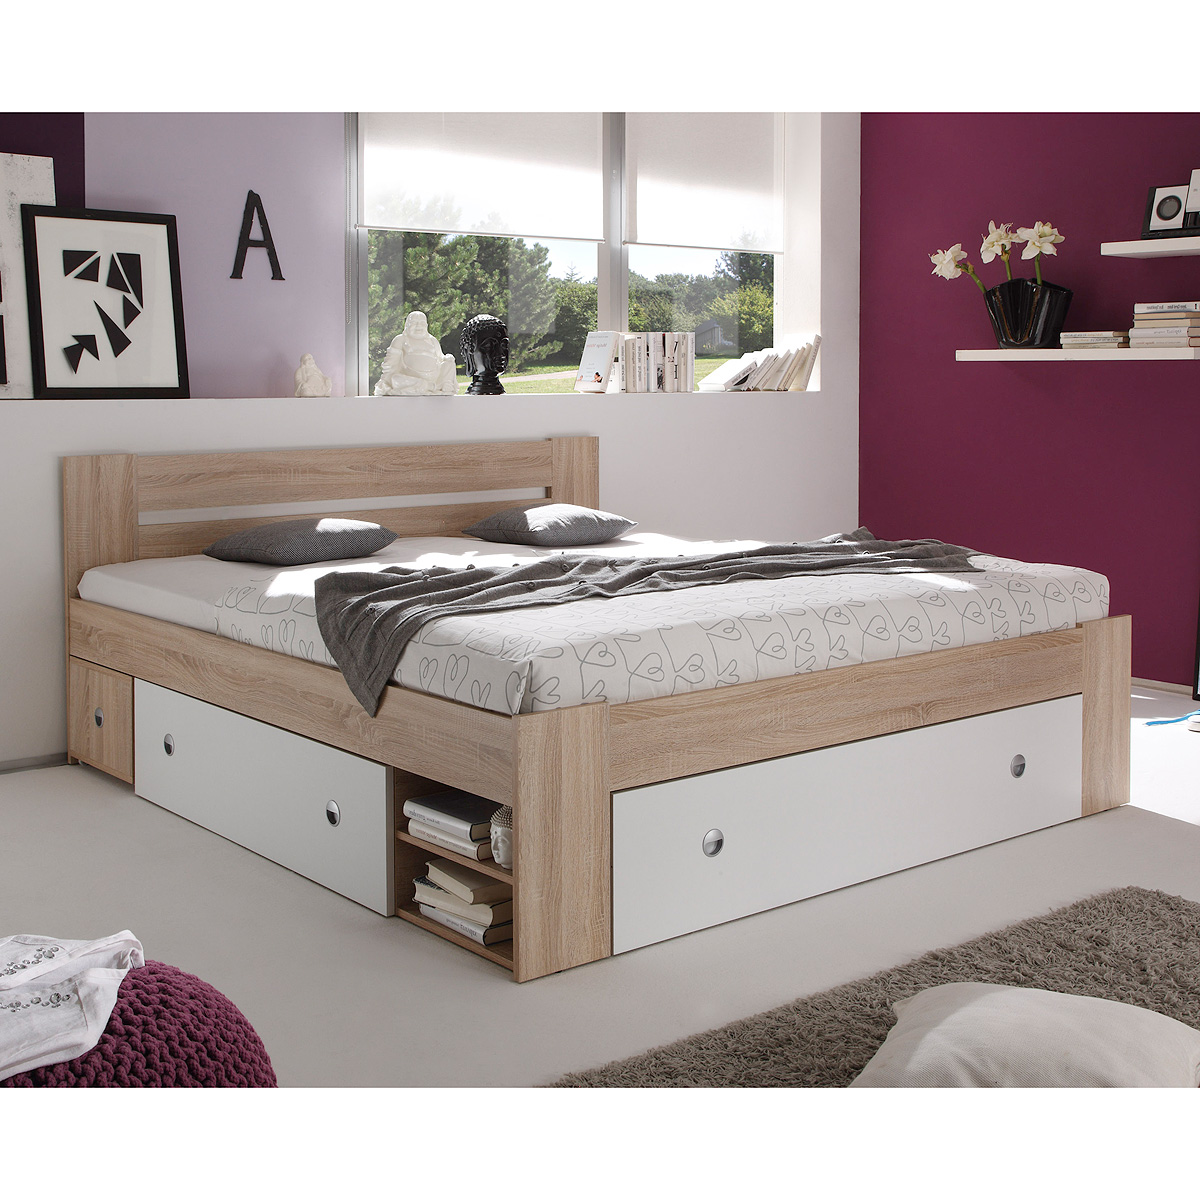 bett stefan funktionsbett schlafzimmerbett in sonoma eiche wei 140x200 eur 248 95 picclick de. Black Bedroom Furniture Sets. Home Design Ideas